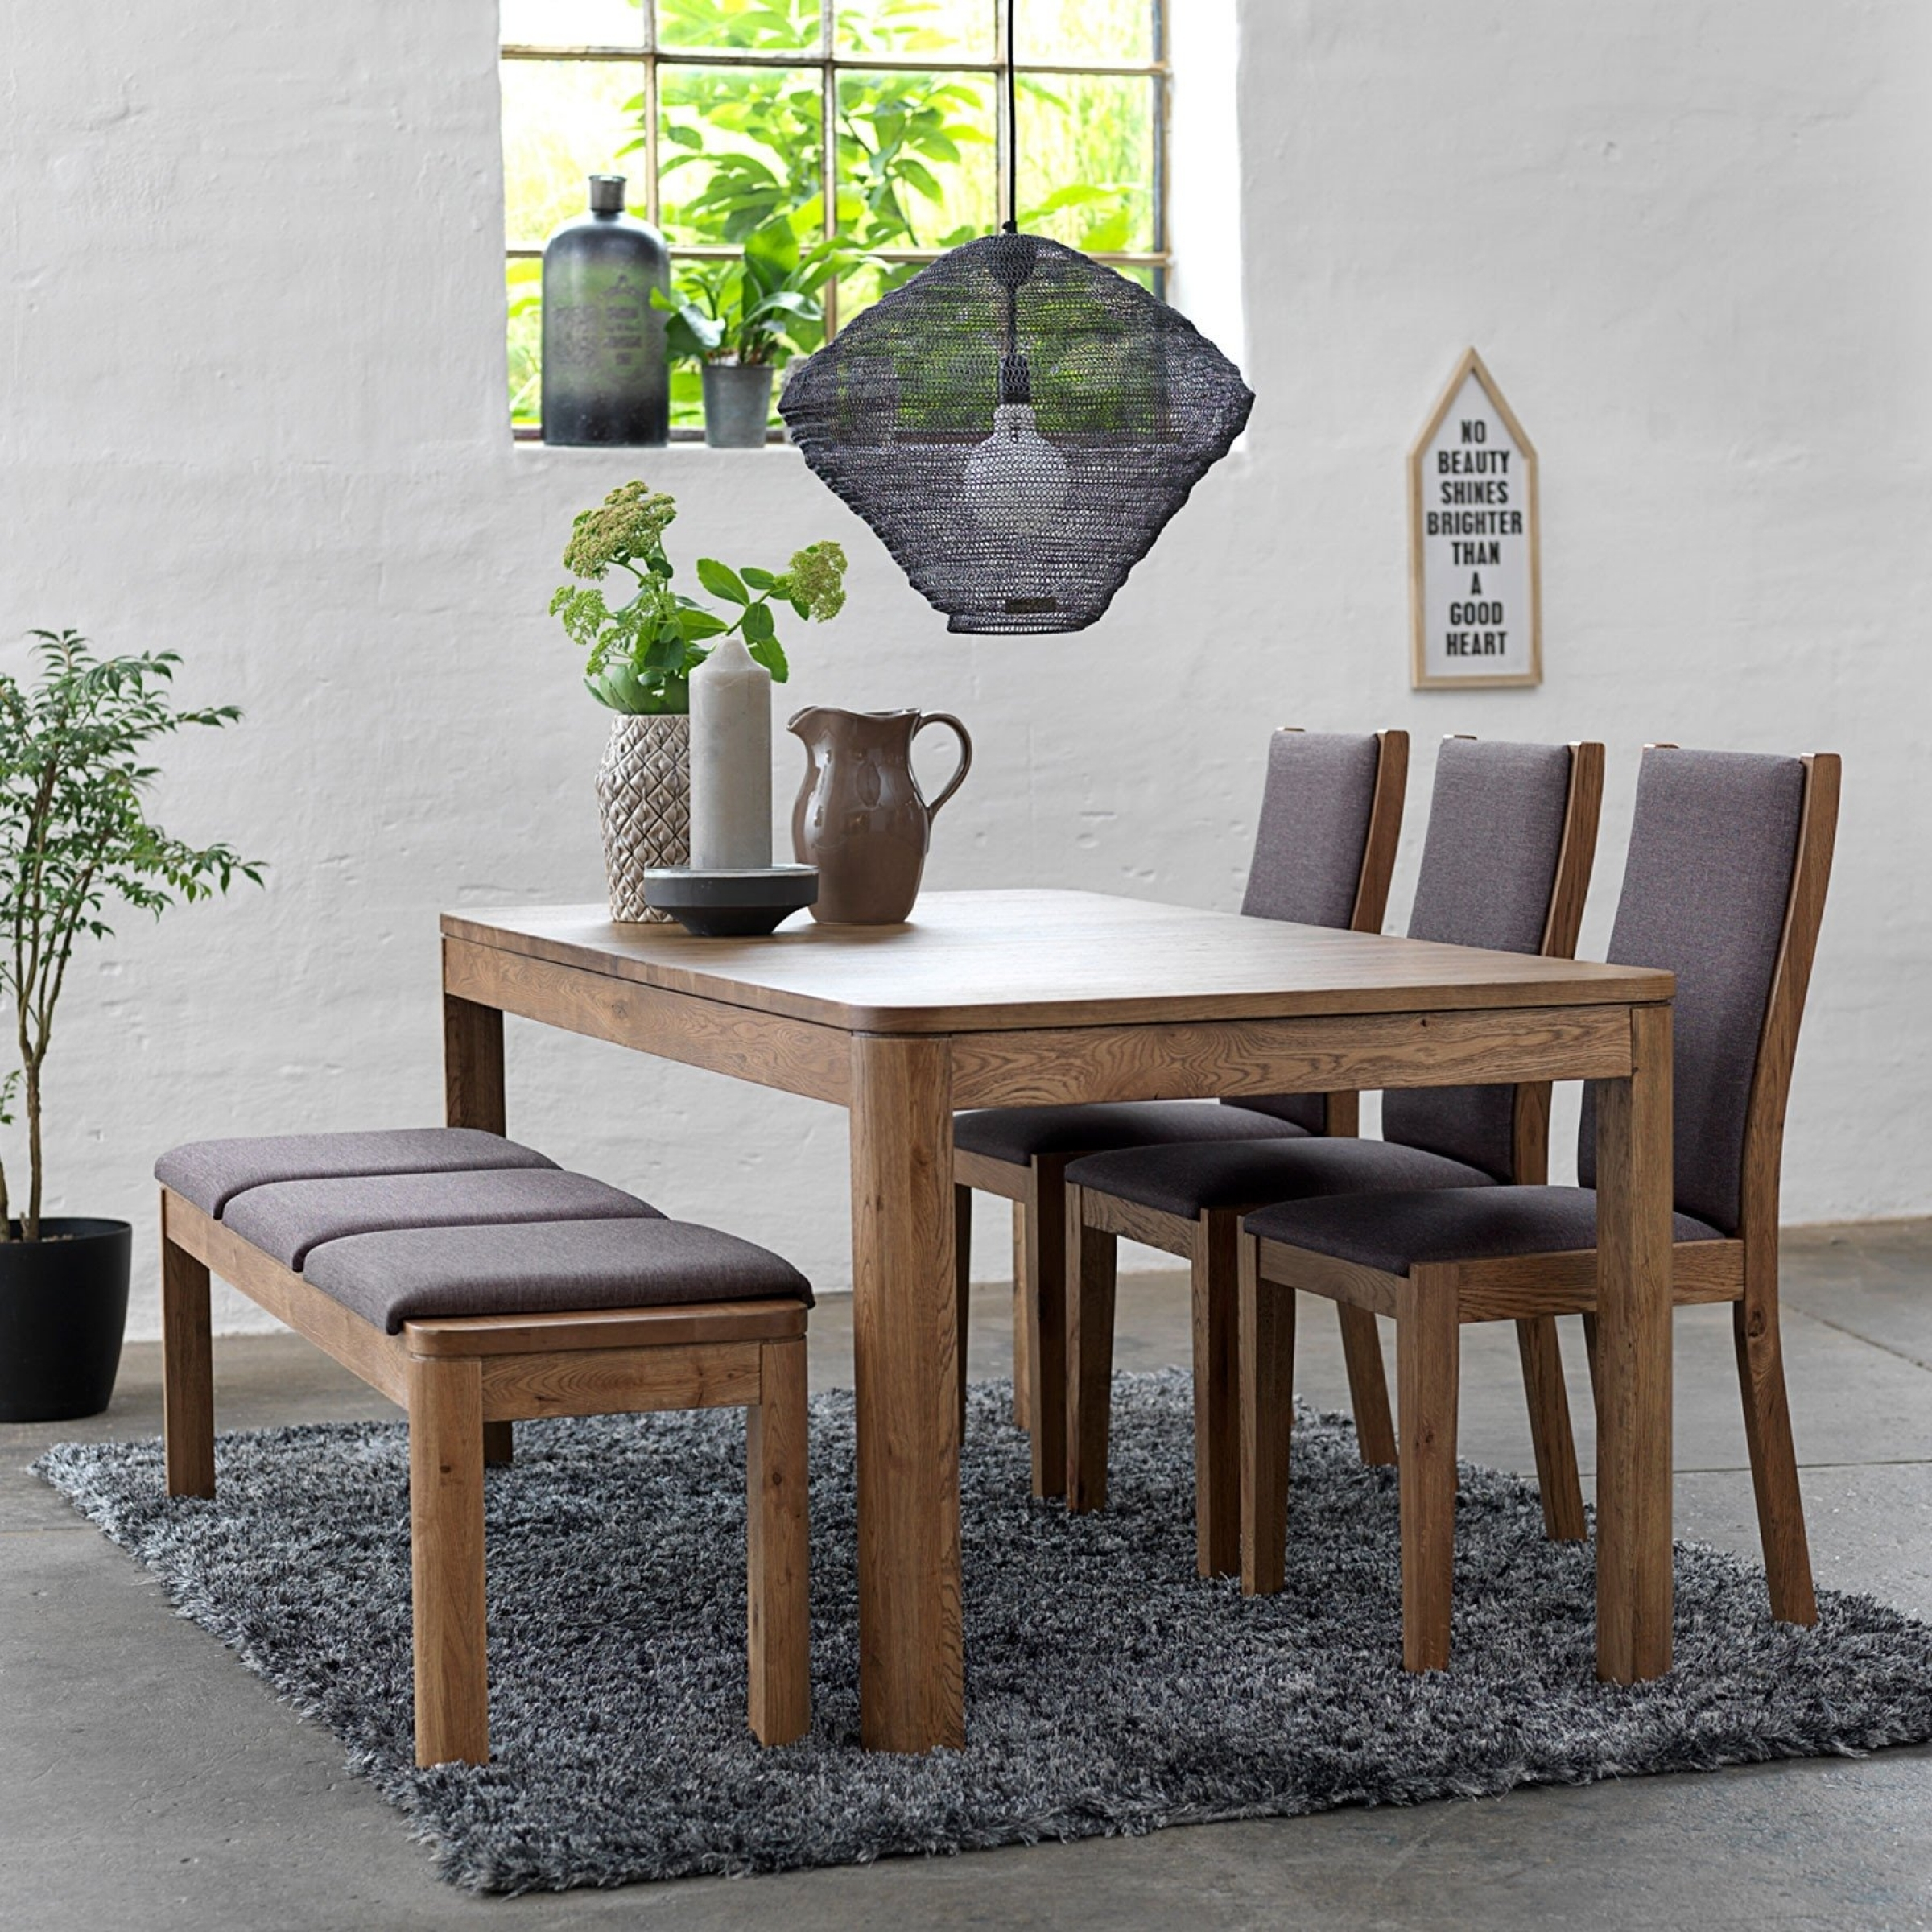 Oak Wood Table And Chairs: Dining Table With Bench